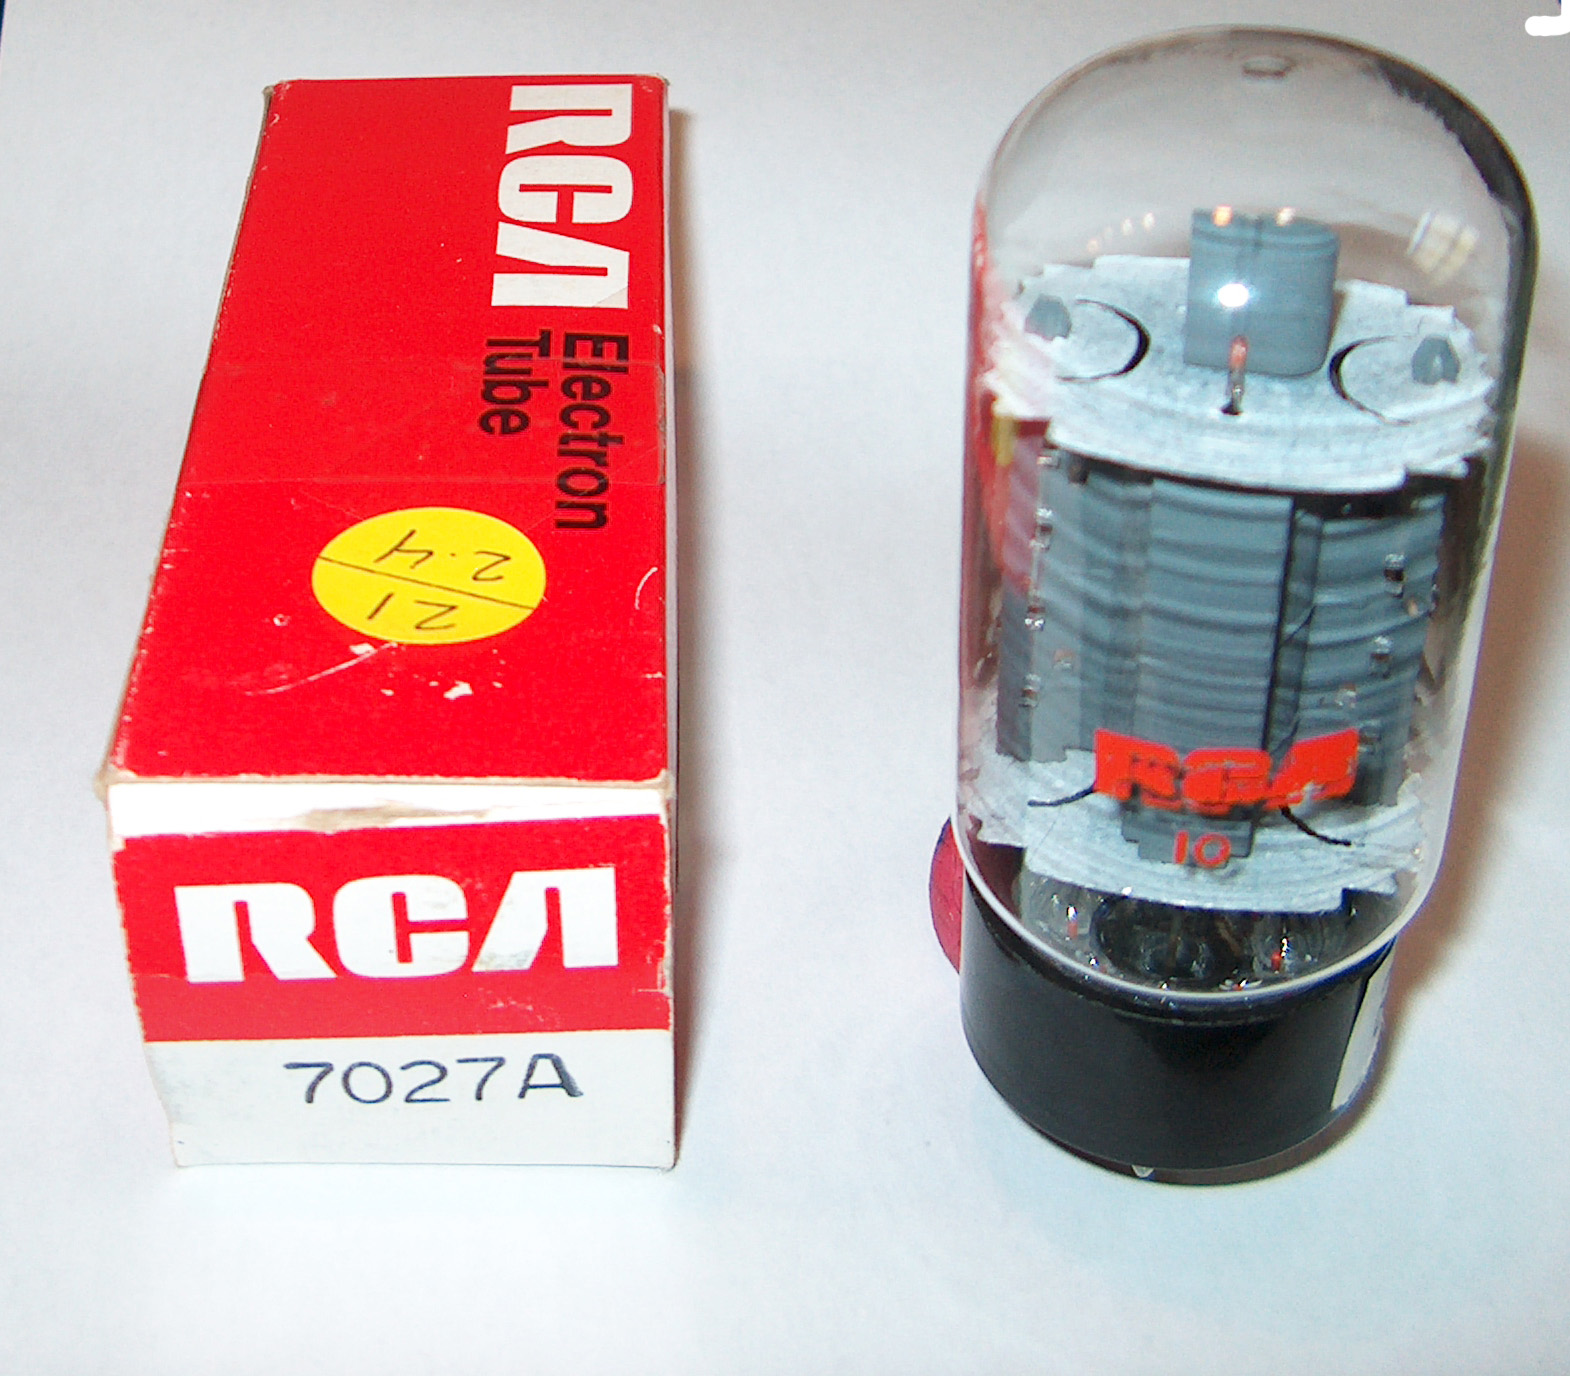 7027A RCA NOS USA SHORT BOTTLE